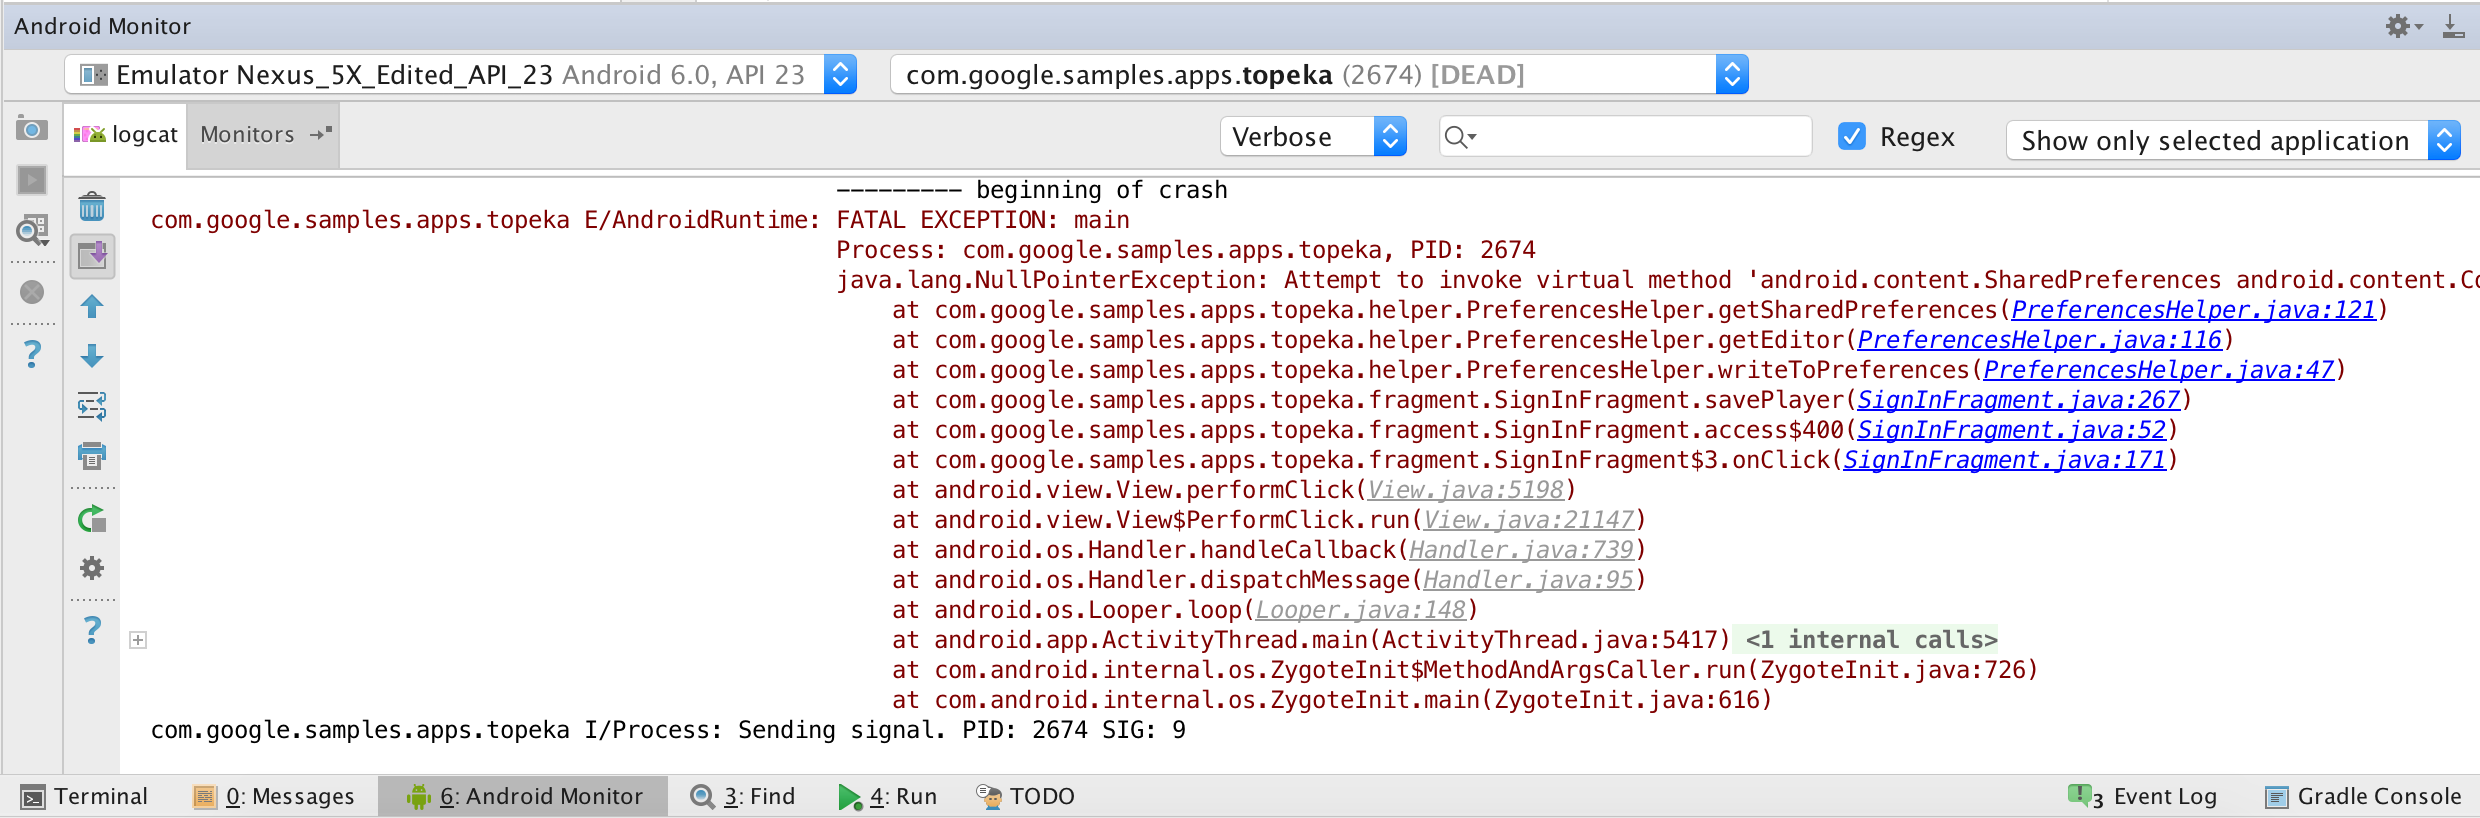 Android Monitor showing a Stack Trace